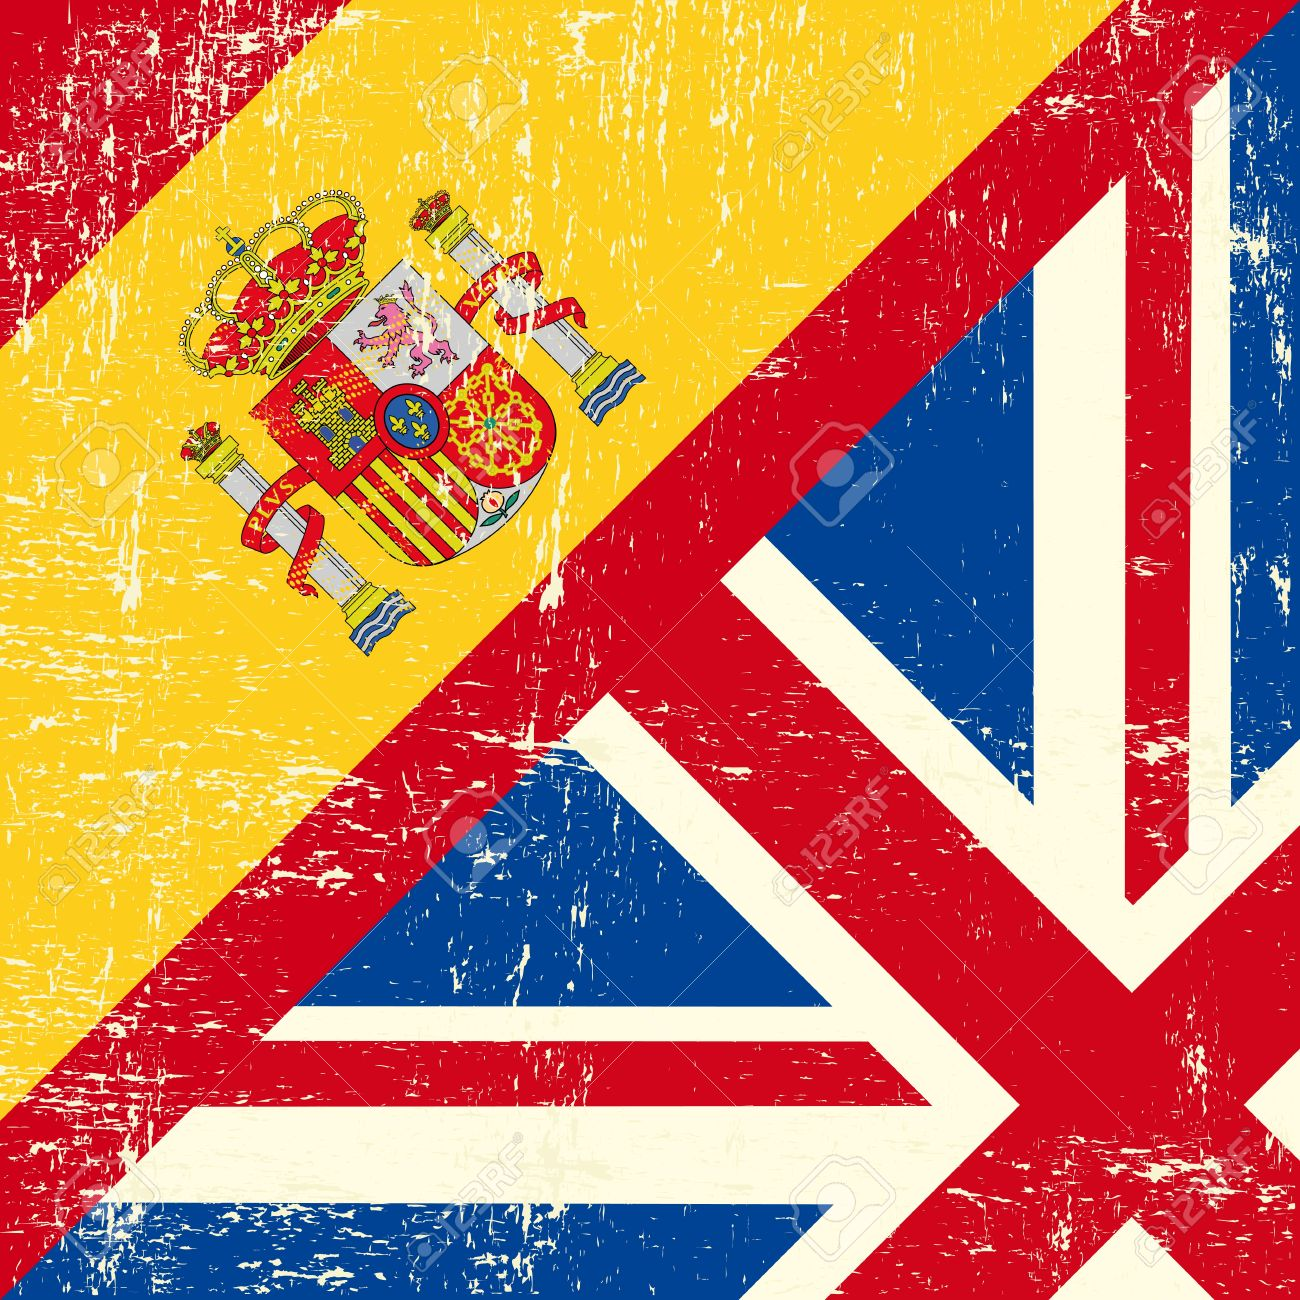 Translate English to Spanish and viceversa